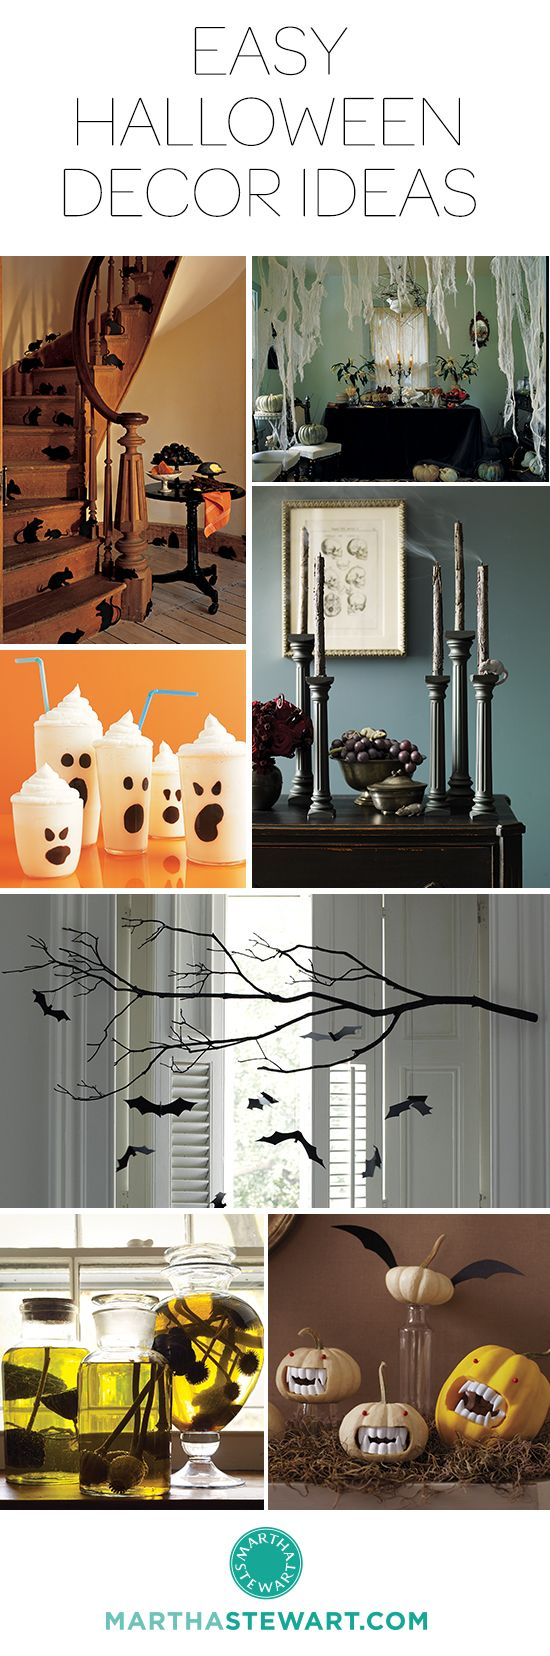 Easy Halloween decorations and ideas. * Halloween - Blog Pitacos e Achados - Acesse: https://pitacoseachados.com – https://www.facebook.com/pitacoseachados – https://plus.google.com/+PitacosAchados-dicas-e-pitacos http://pitacoseachadosblog.tumblr.com https://www.h2h.com.br/conselheirapitacosachados #pitacoseachados